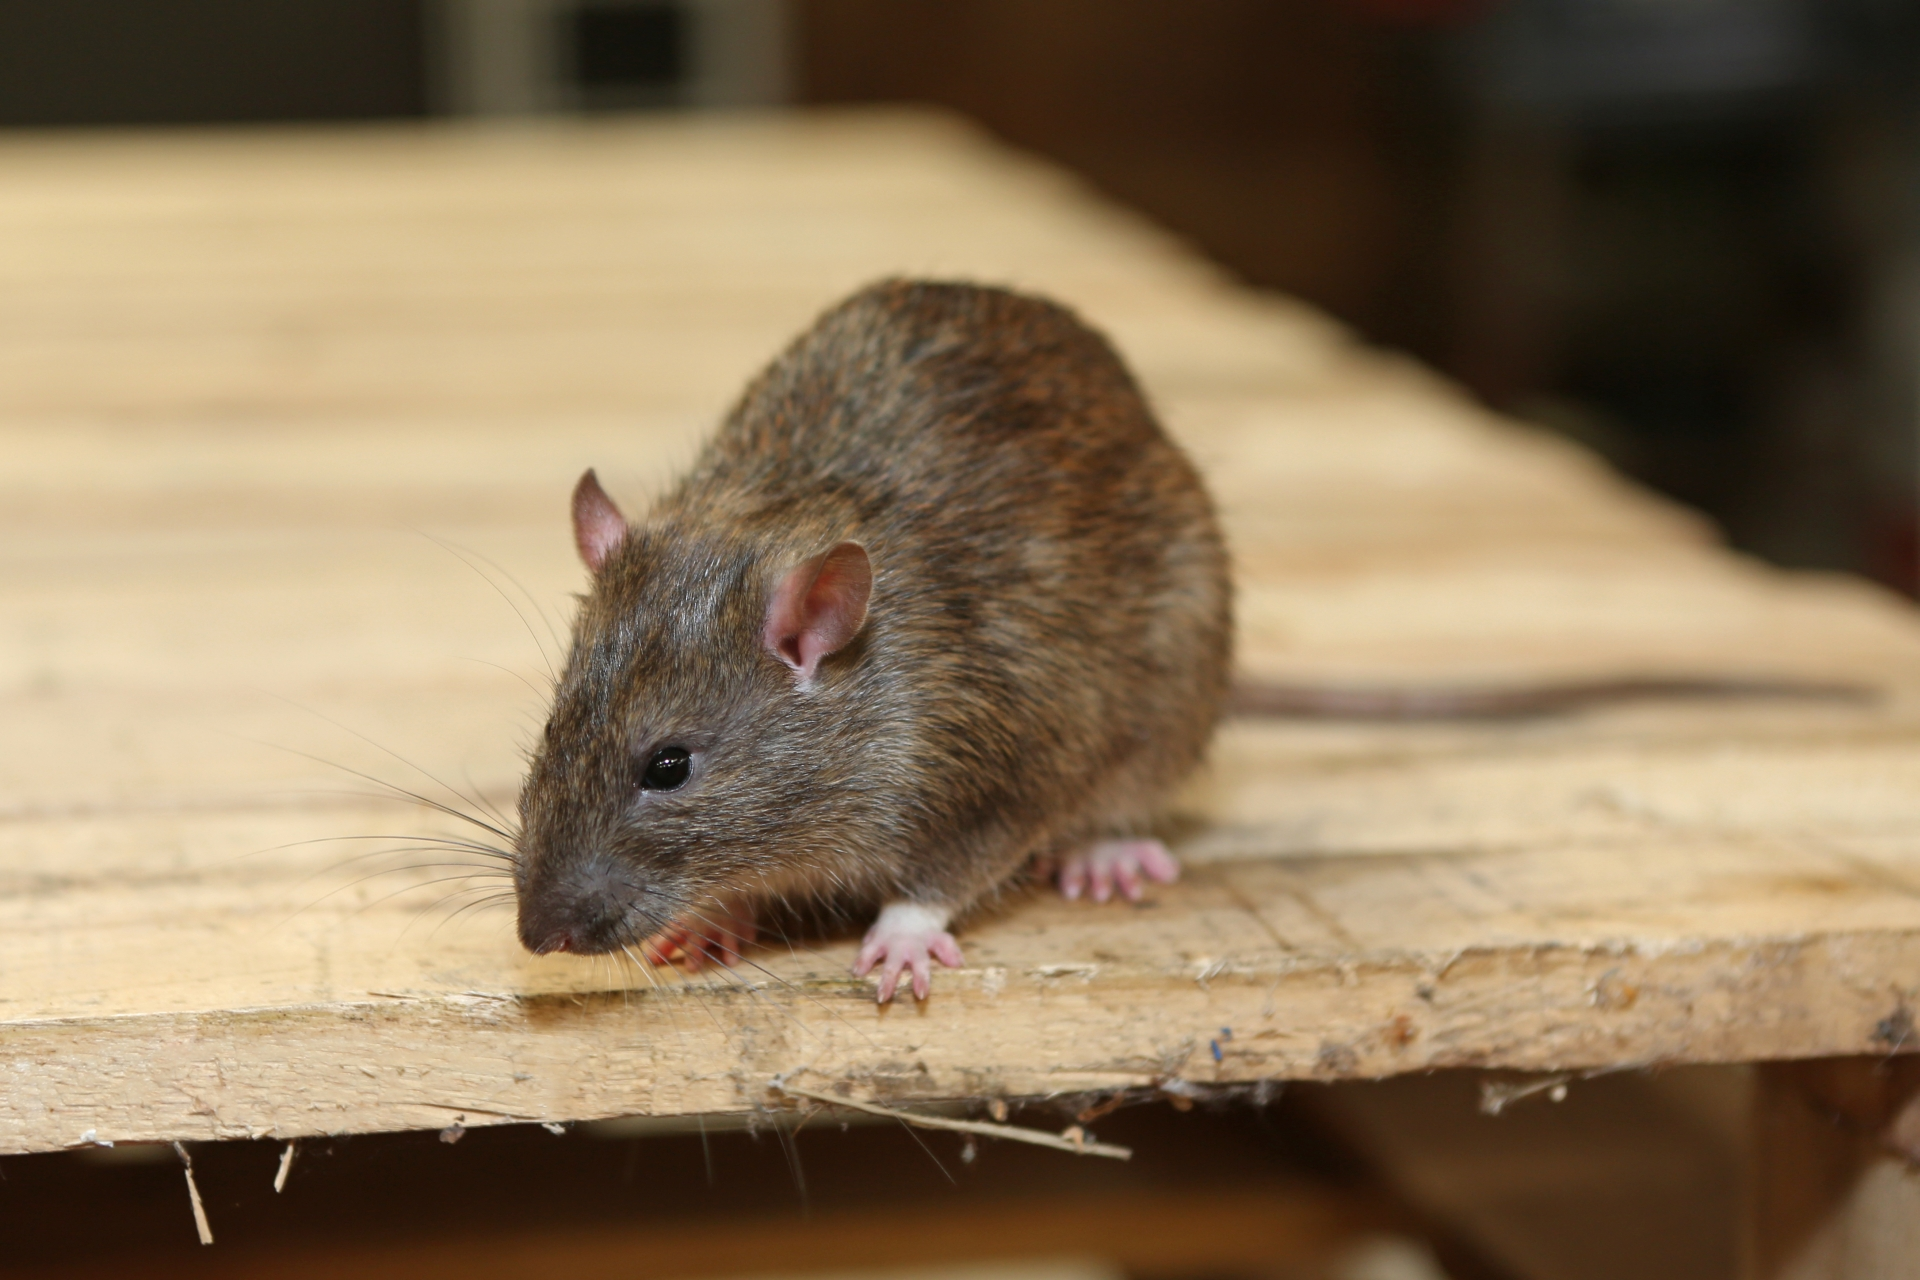 Rat extermination, Pest Control in Hither Green, SE13. Call Now 020 8166 9746